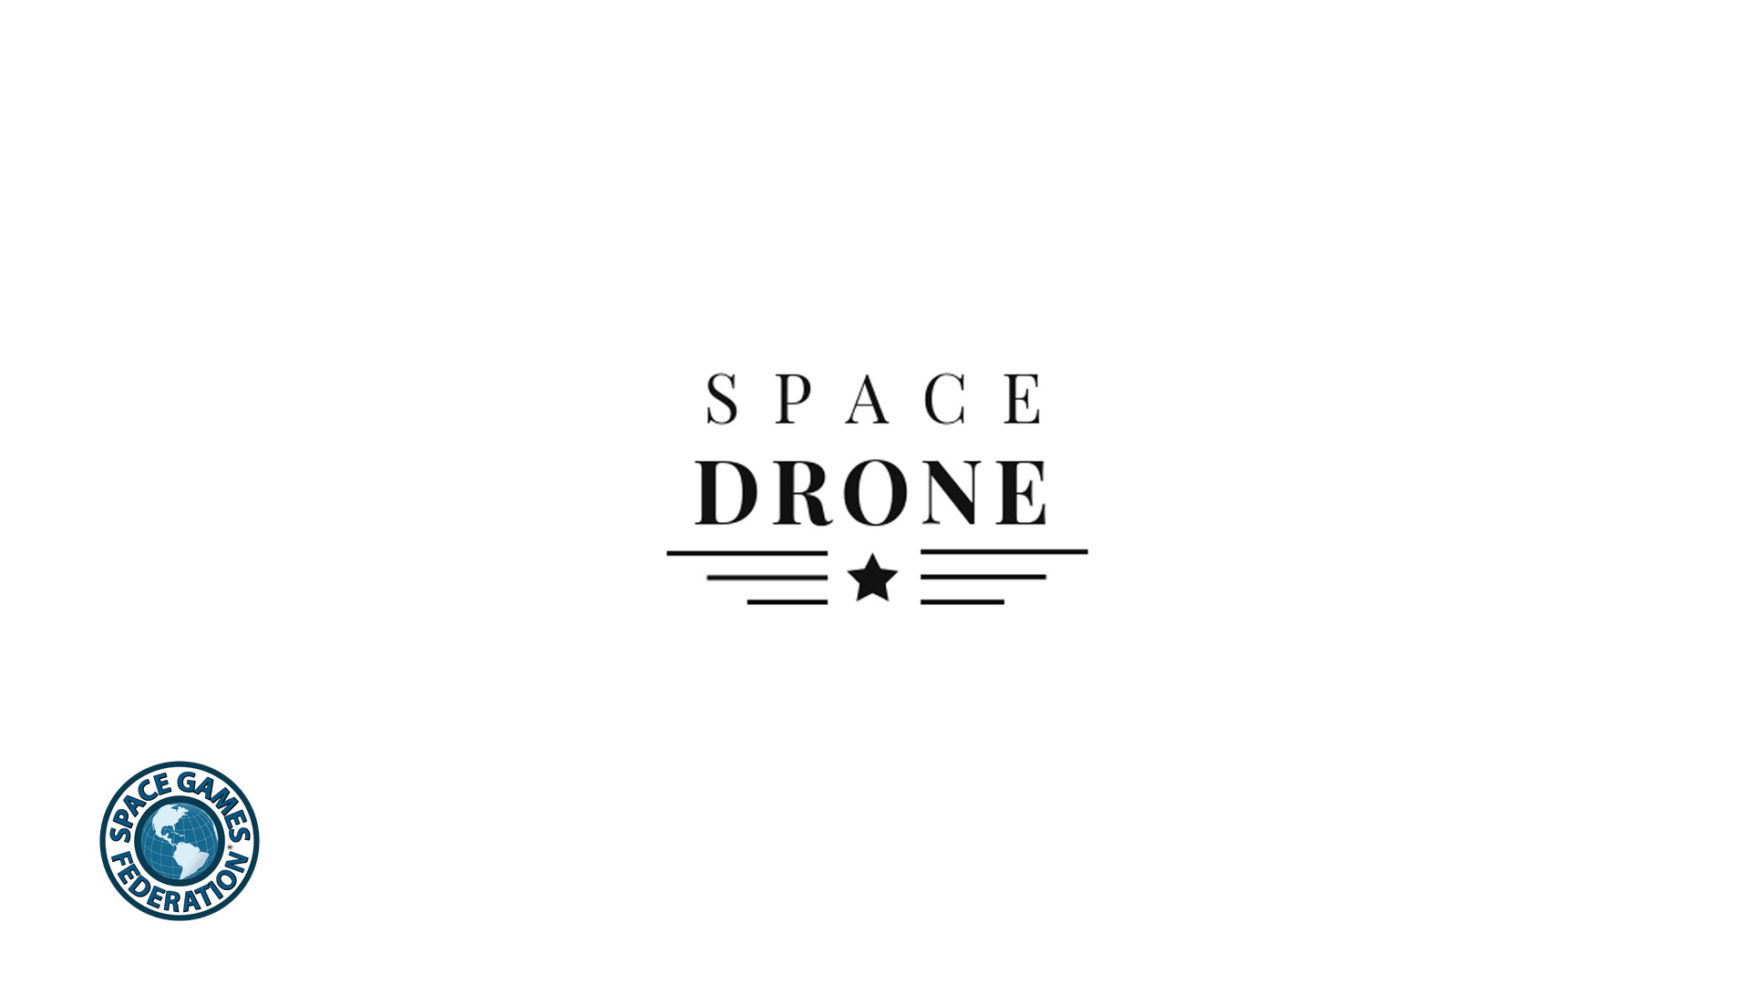 11). Space Drone